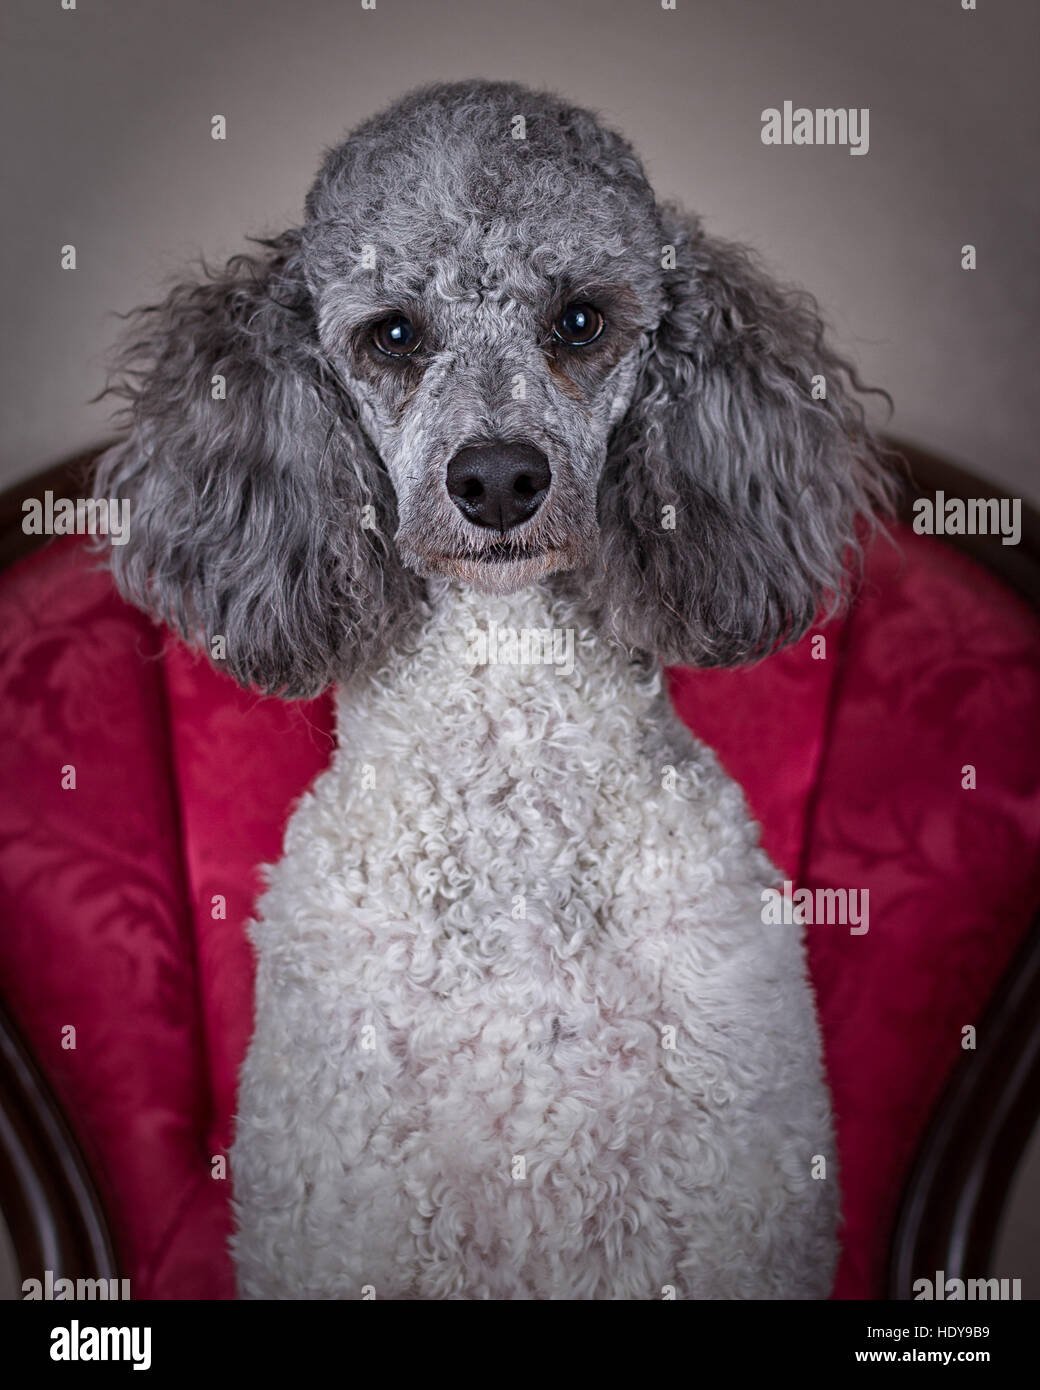 poodle dog sitting in chair staring at the camera - Stock Image